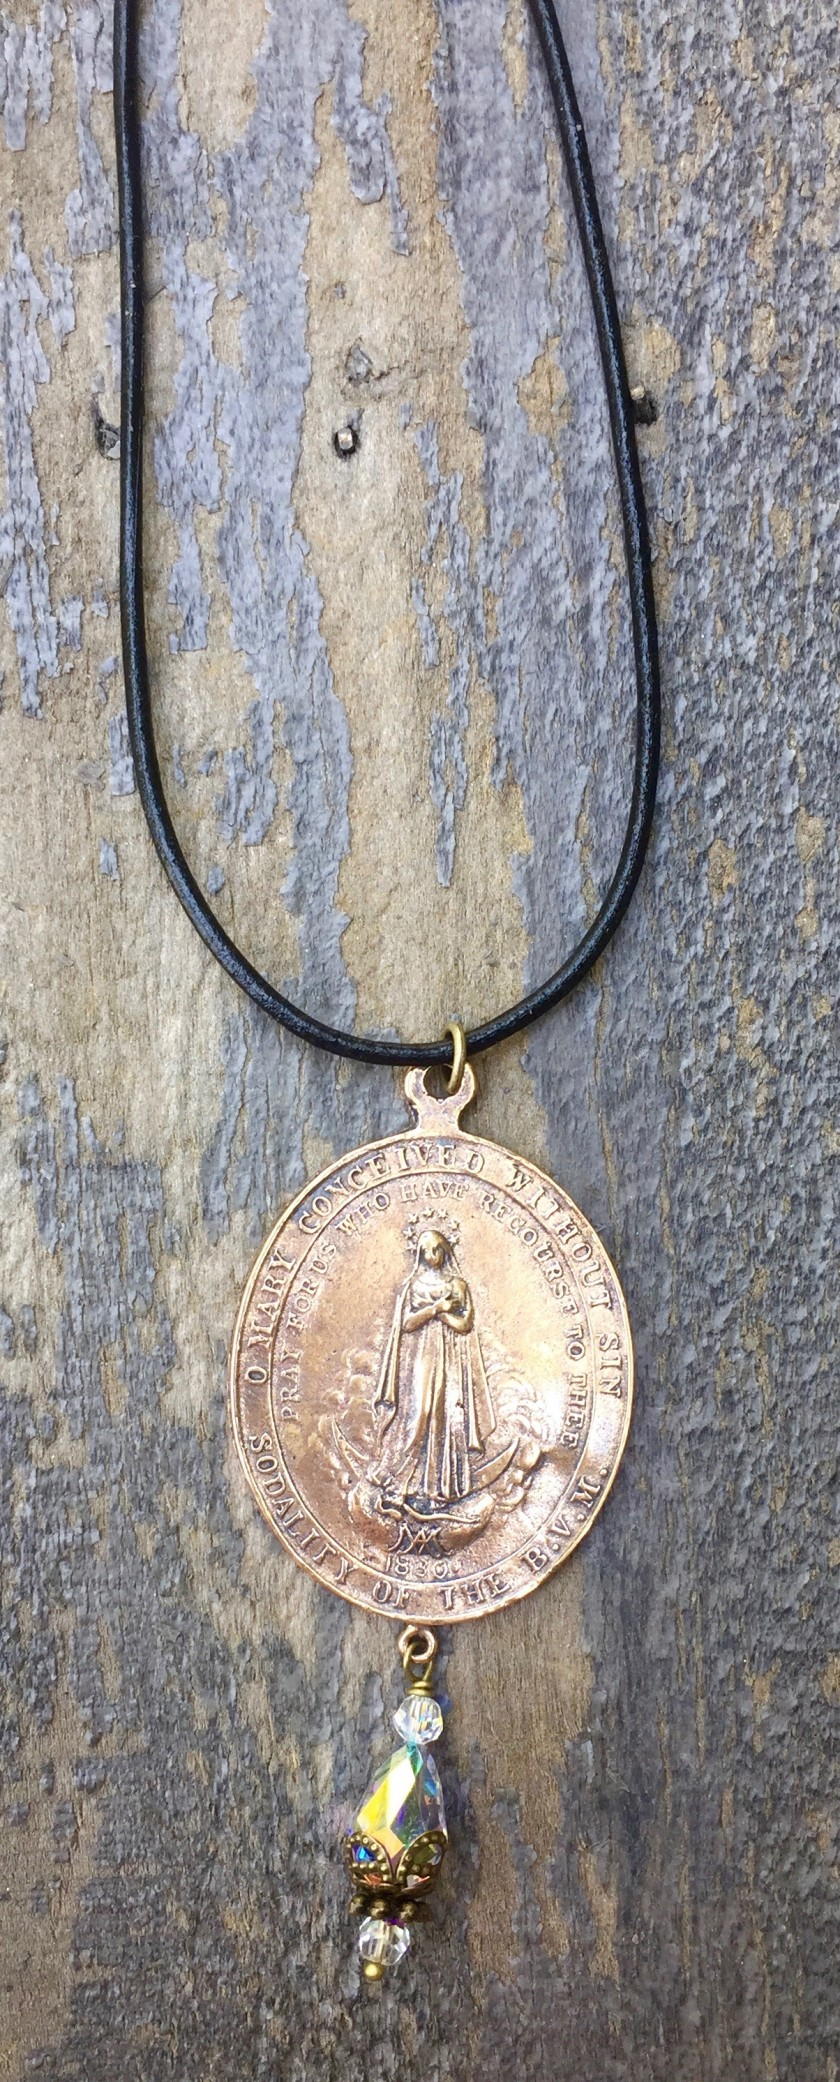 Necklace Of The Immaculate Conception